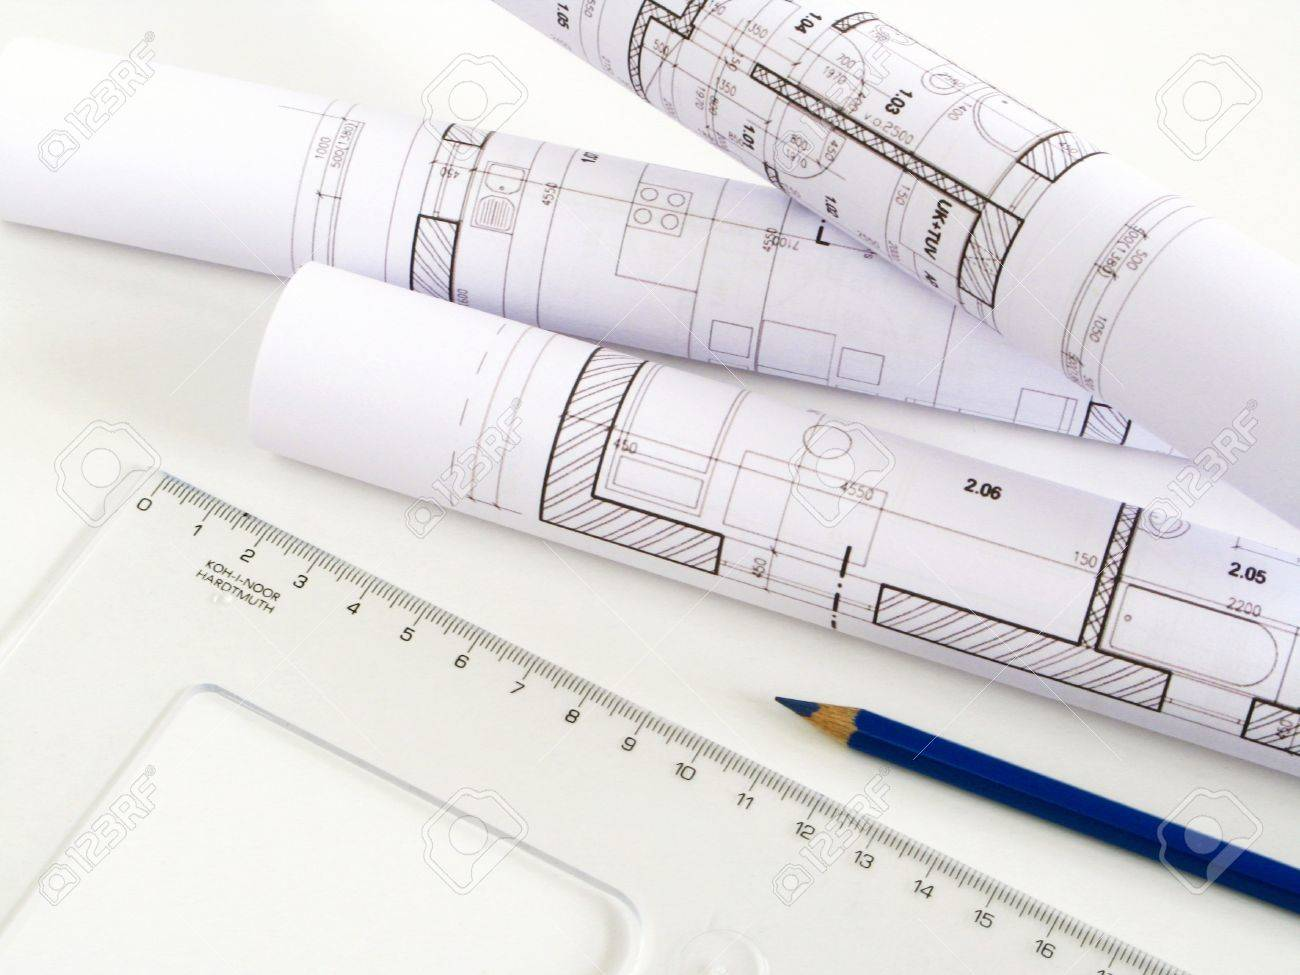 4176077 Architectural Sketch Of House Plan Stock Photo Plan Architecture Architectural Sketch Of House Plan Stock